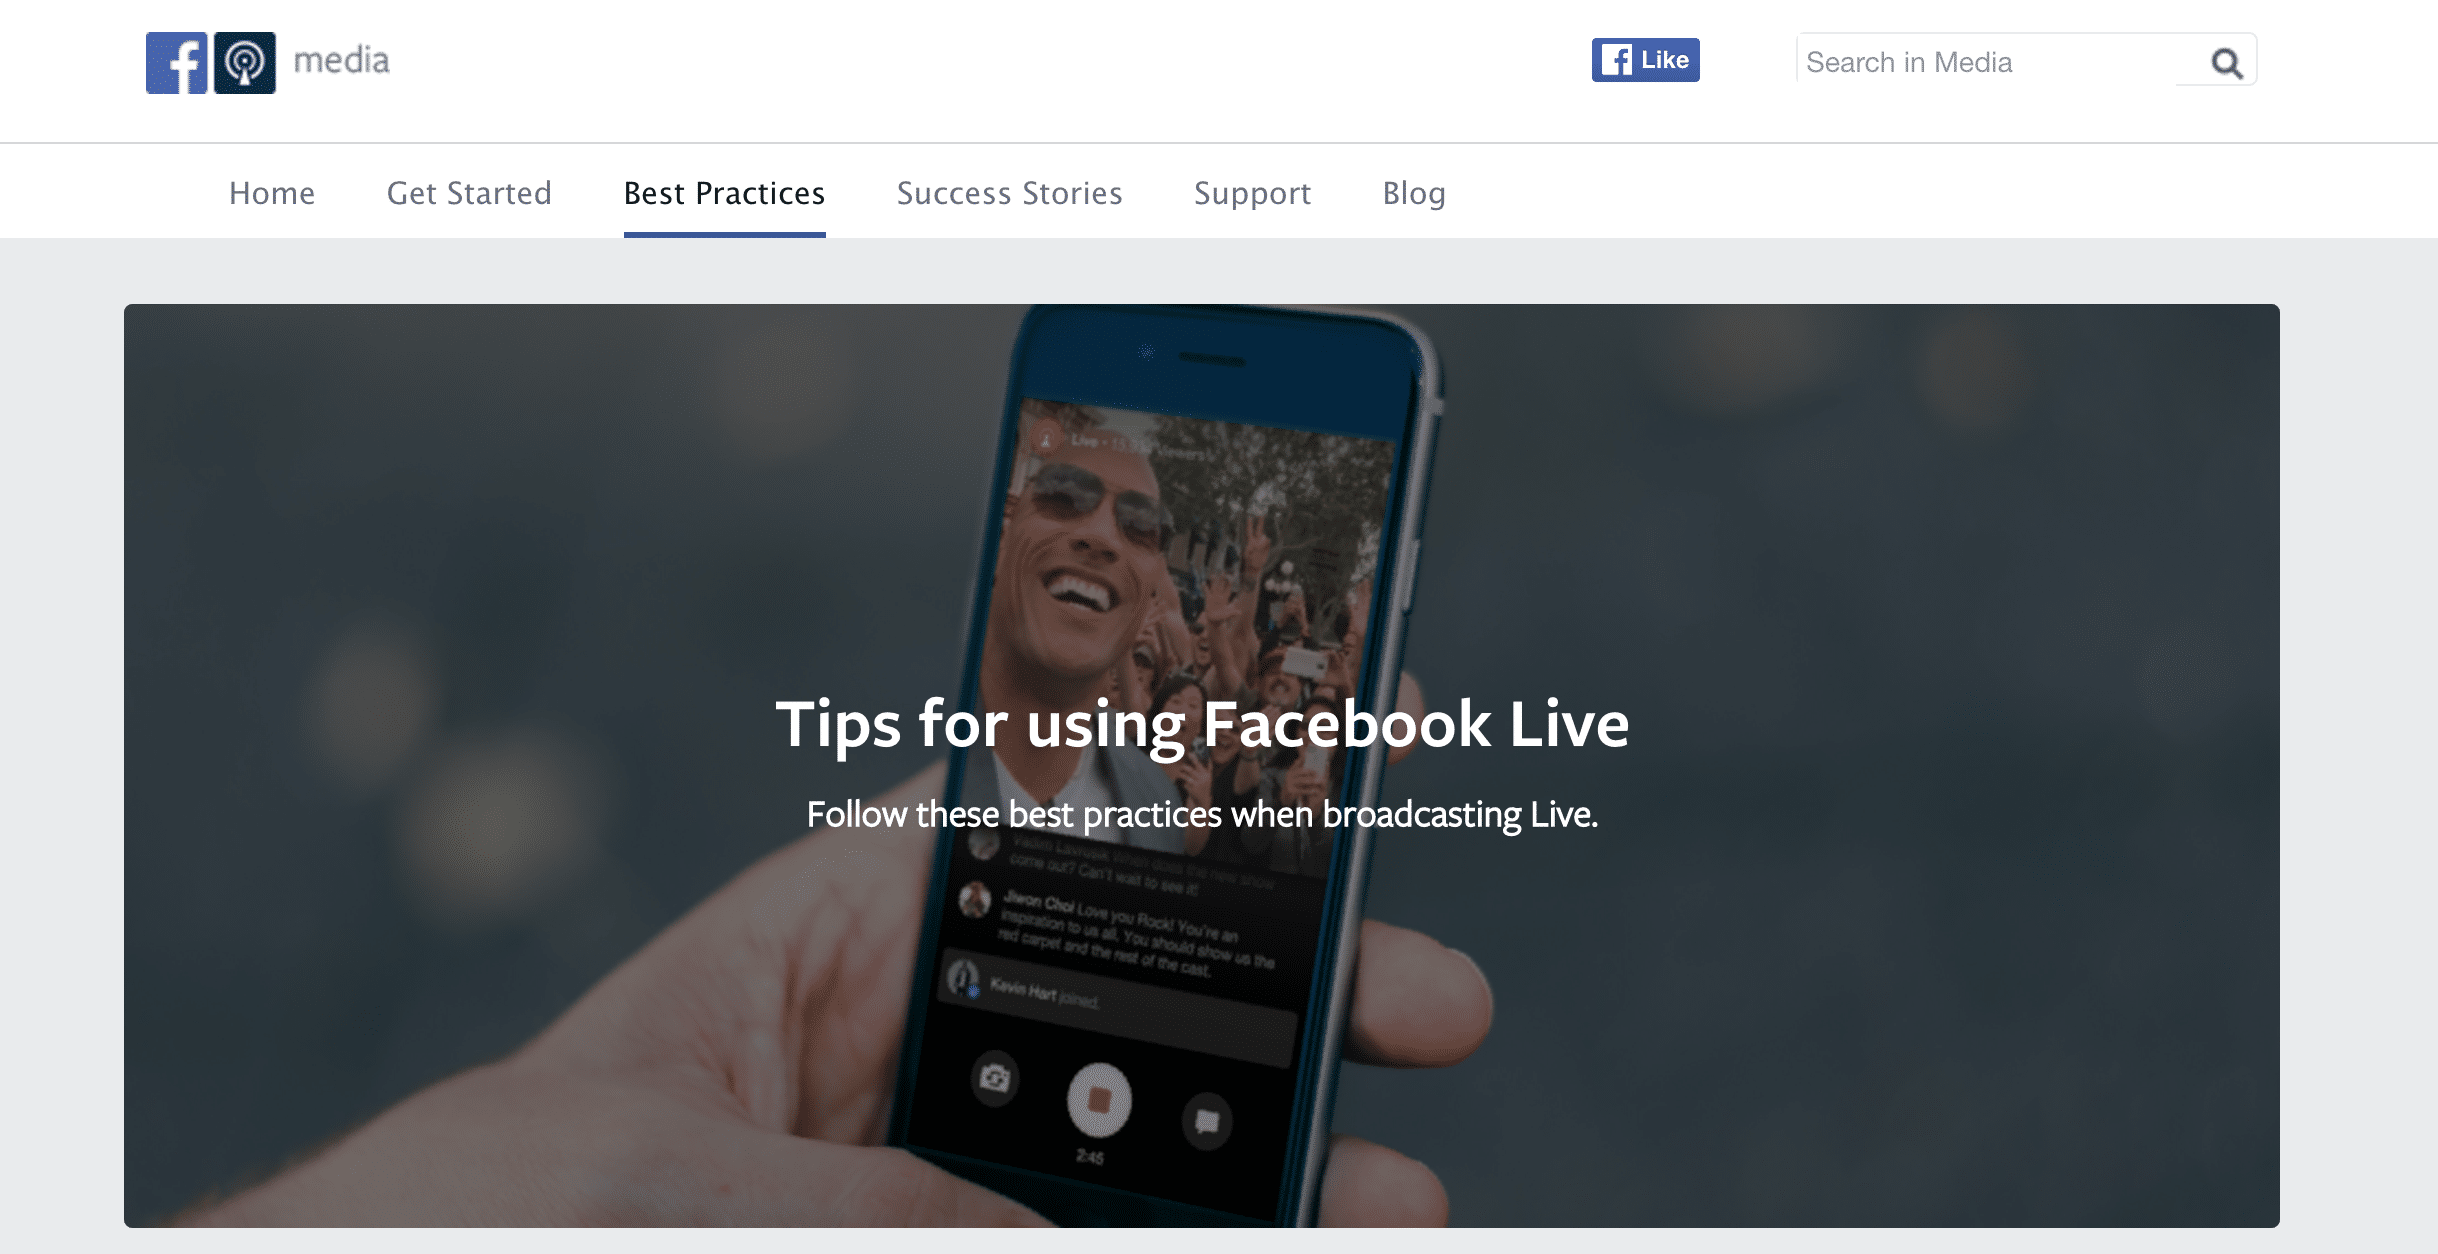 Facebook offers some great tips for getting started with Facebook Live.